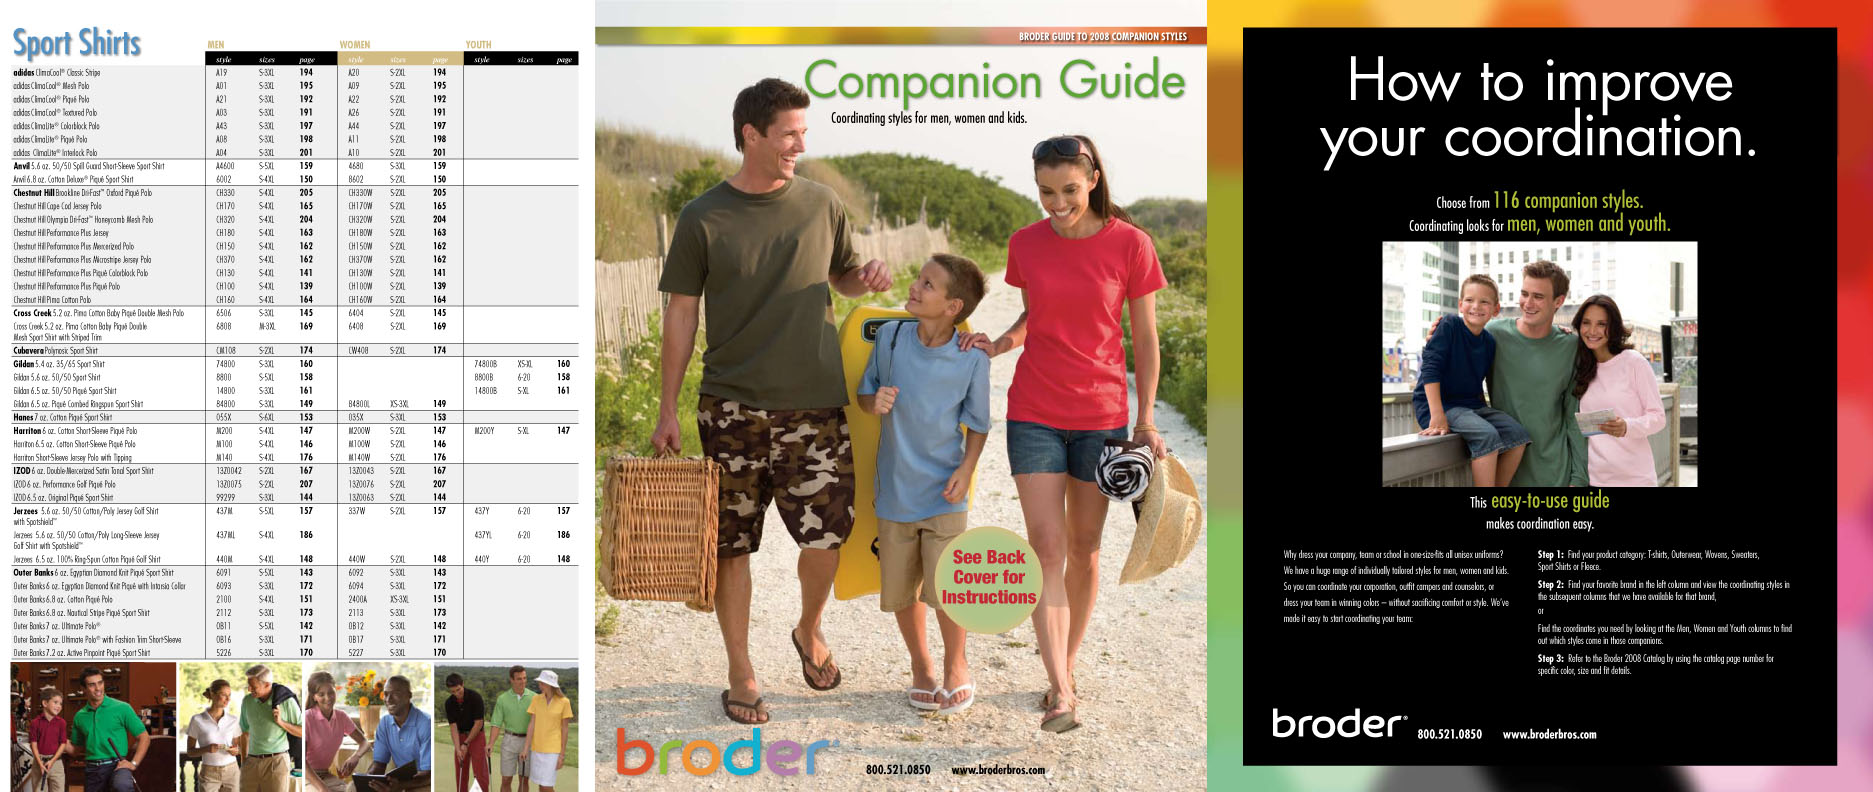 Broder Bros Coupon Codes: 3 Coupons, Promo Code Discounts in July 2012